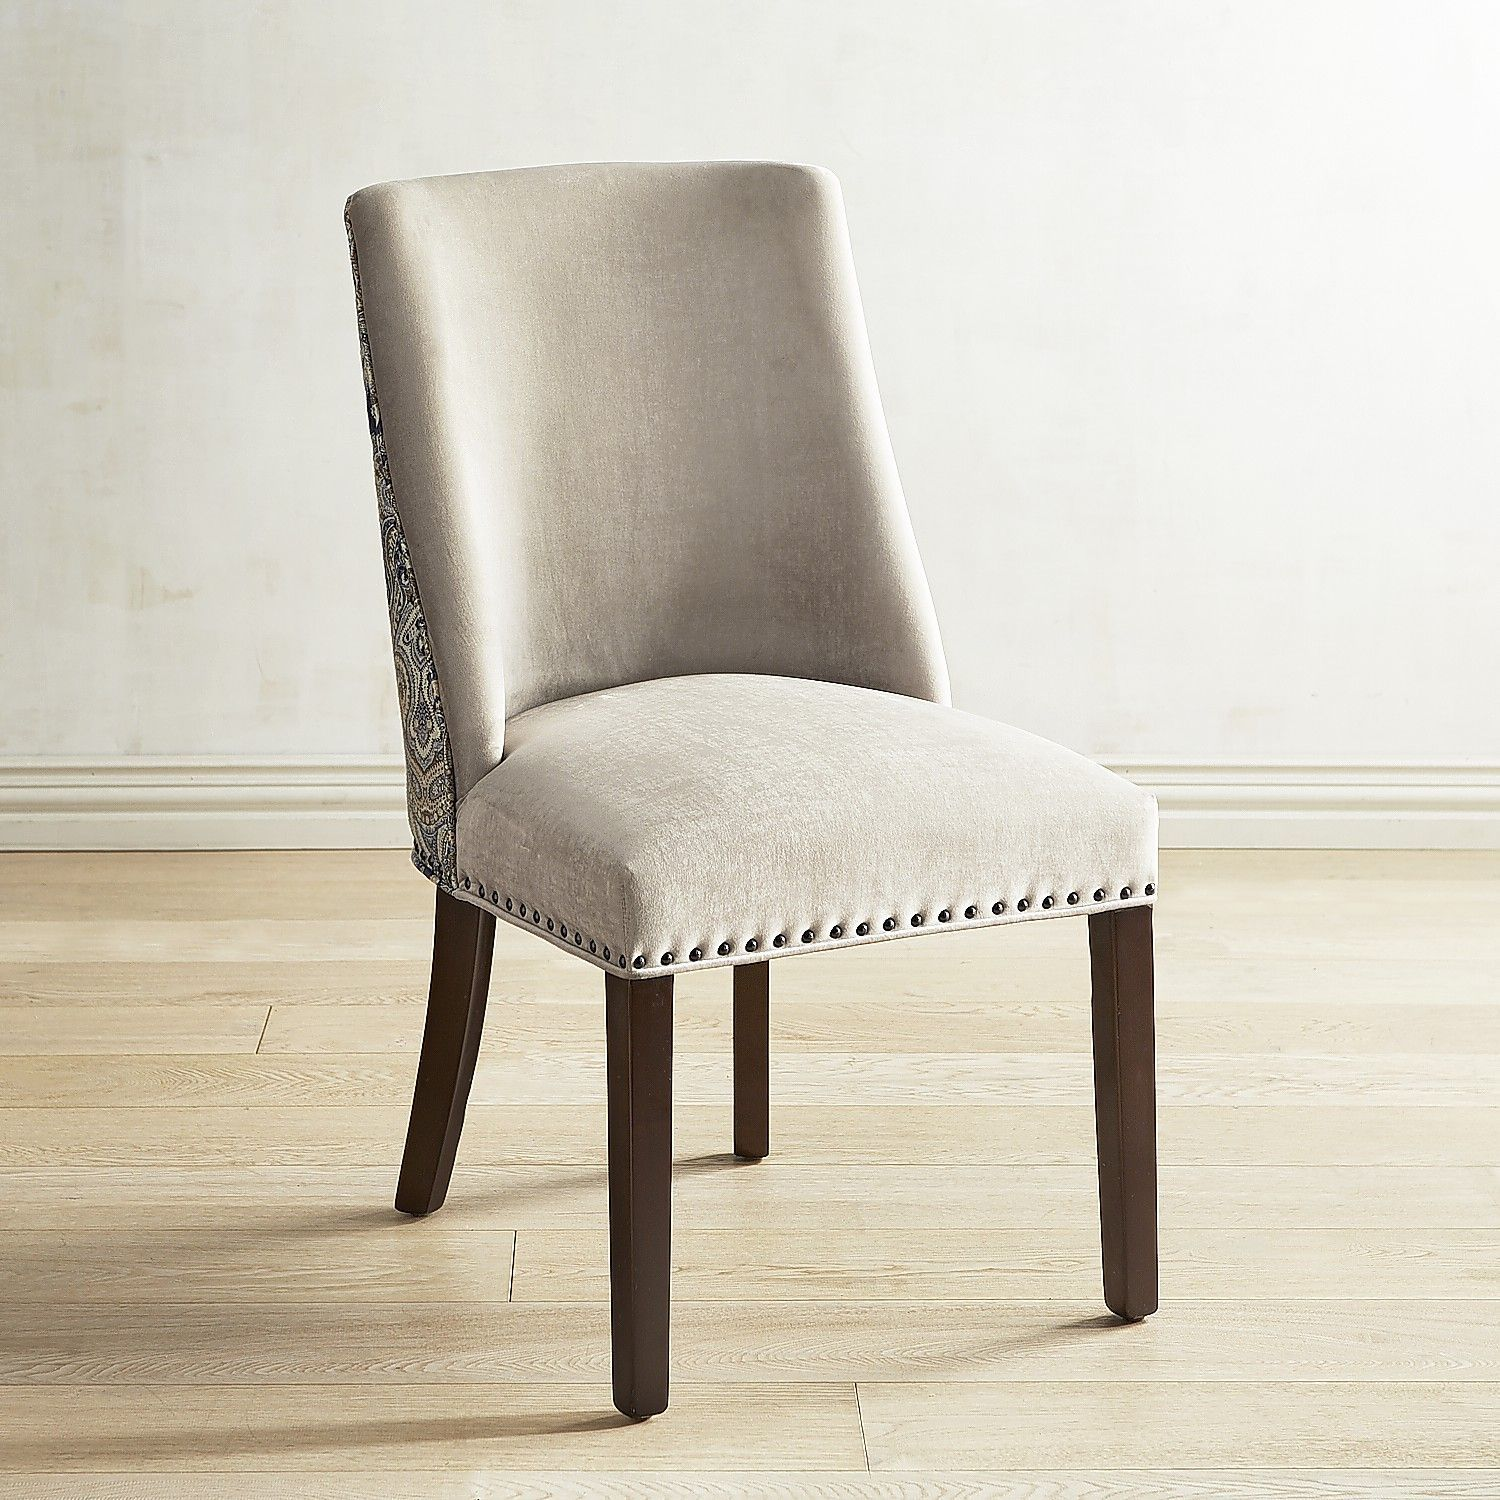 Corinne Blue Dining Chair with Espresso Wood Linen